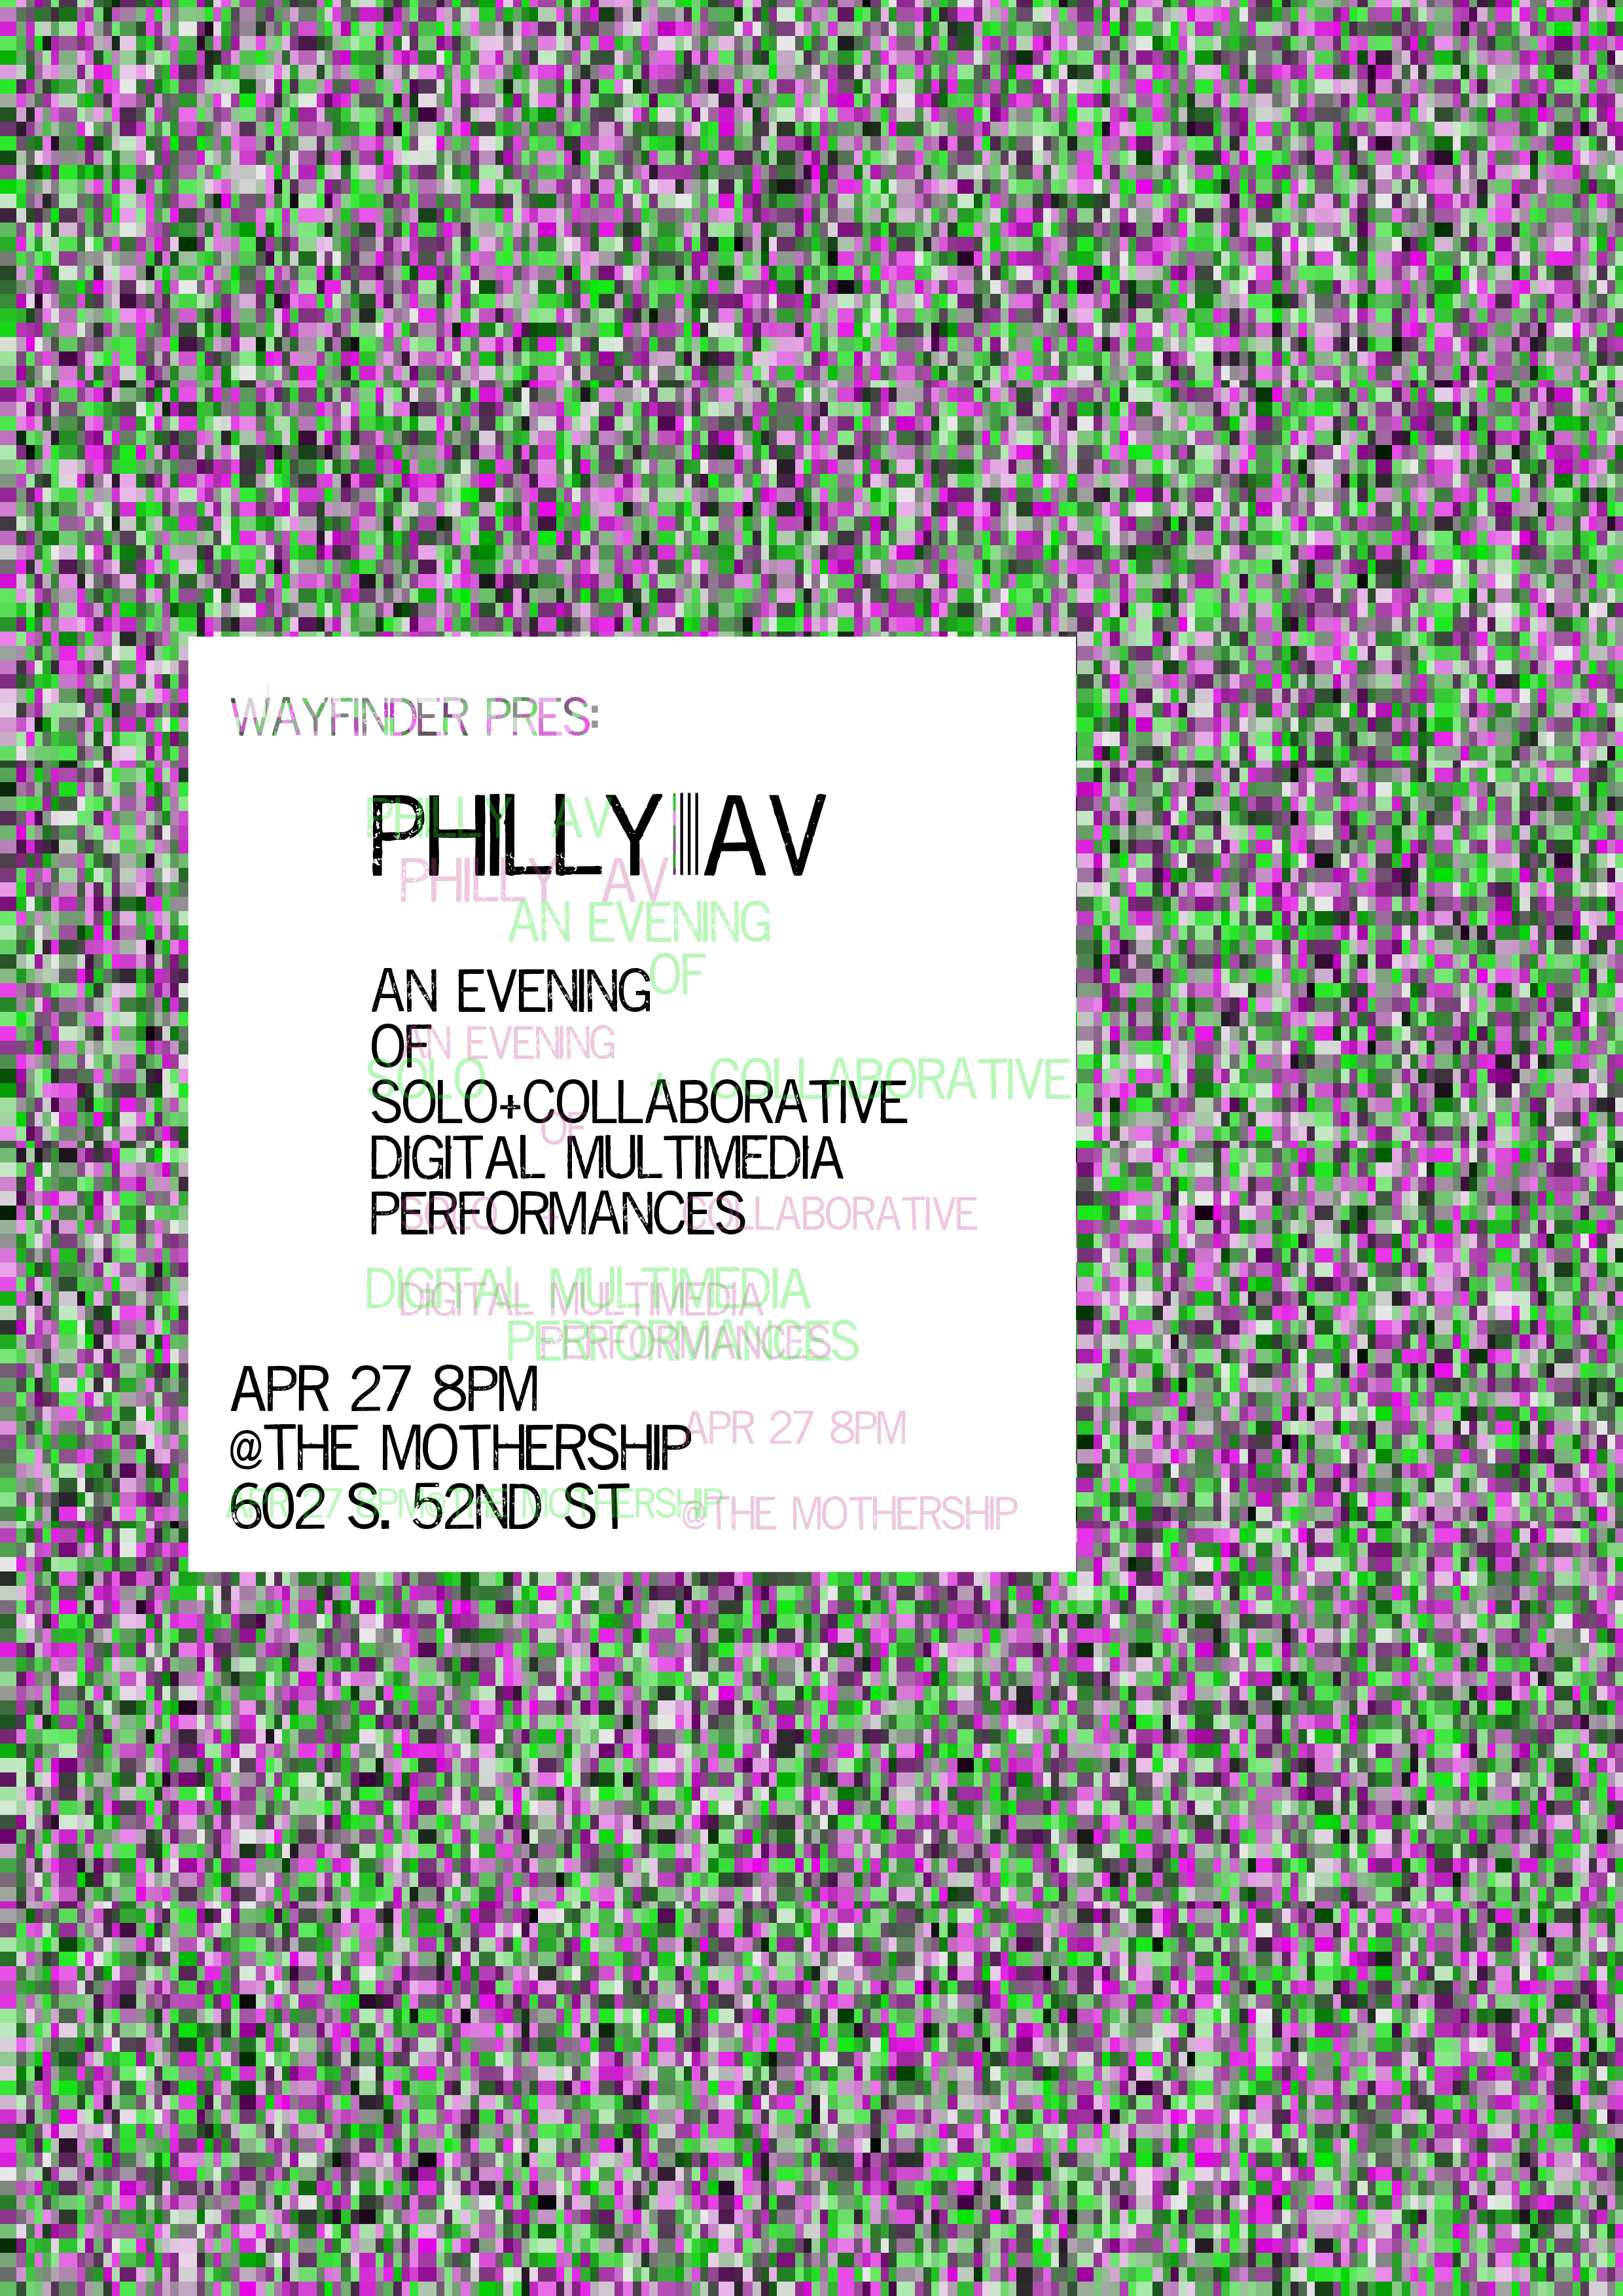 Wayfinder - April edition - PHILLY A|V COLLECTIVEAn evening of solo + collaborative digital multimedia performancesSaturday, April 27th 8:00pmThe Mothership602 S. 52nd St.all shows $10 suggested donation (no one turned away for lack of funds)BYO + drinks for sale